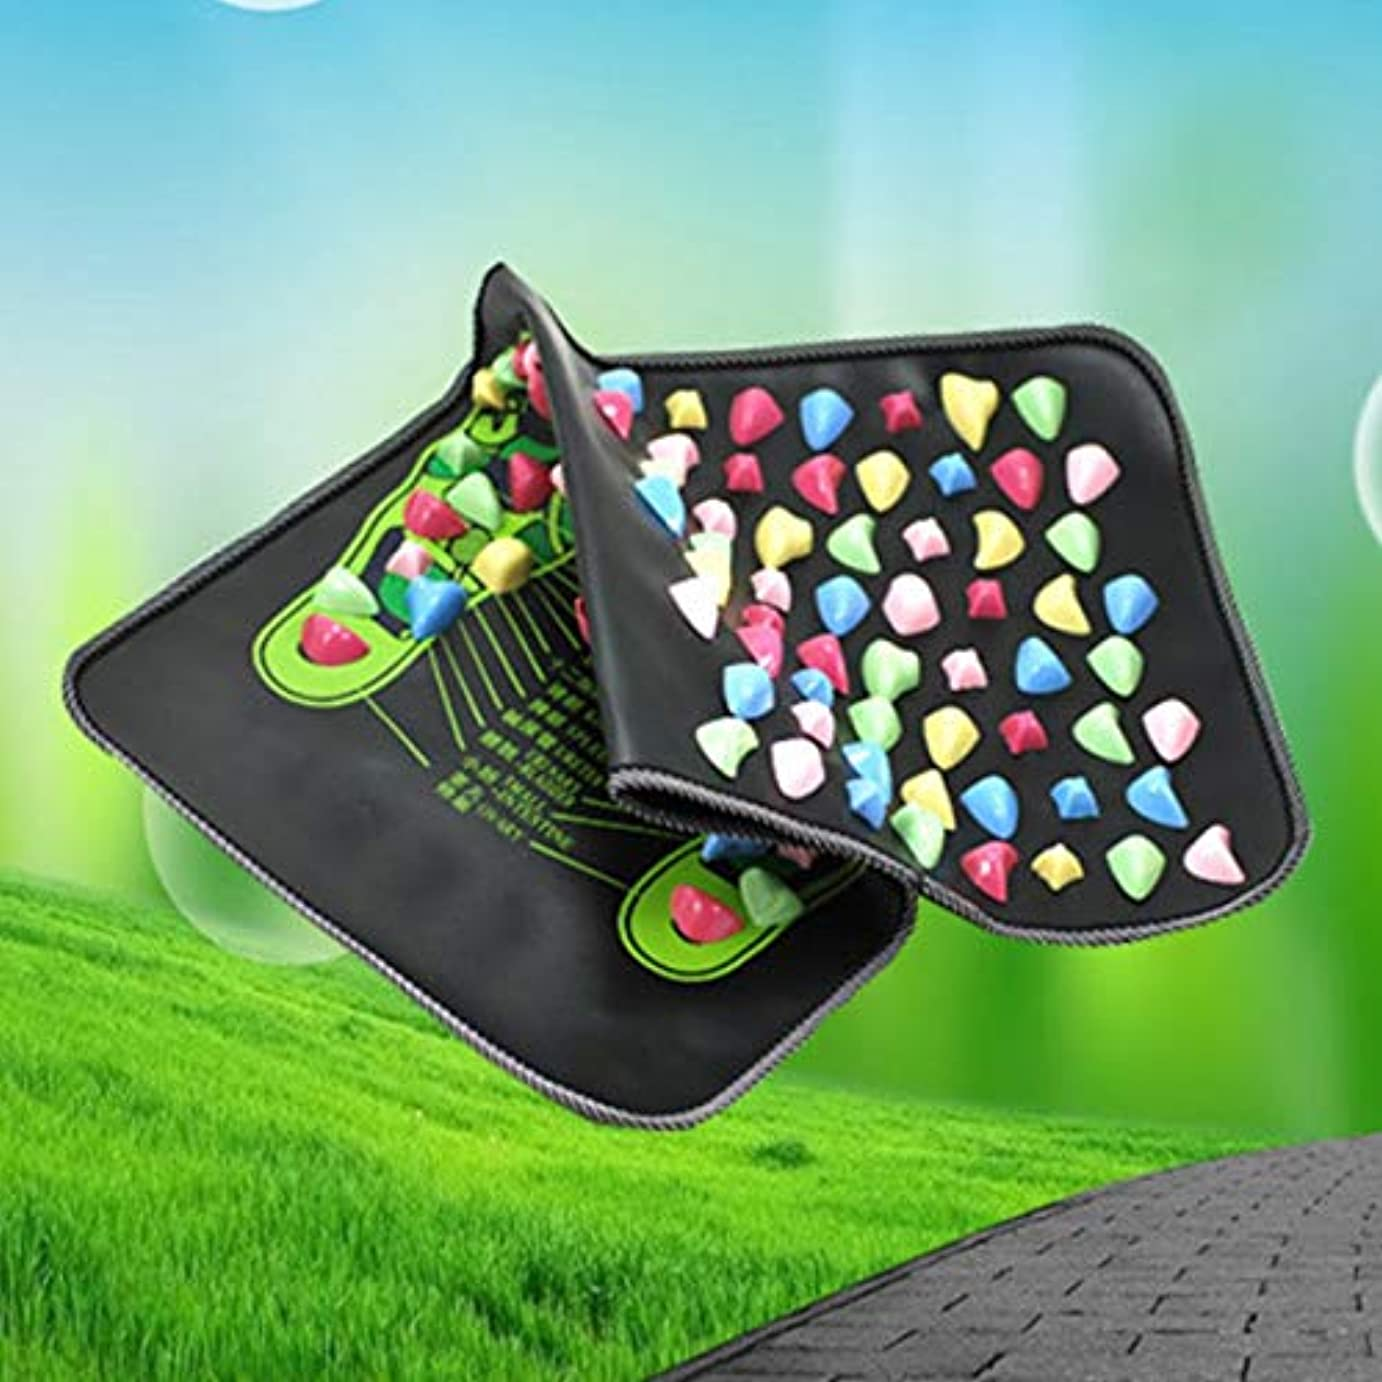 戦艦包帯ドルReflexology Walk Stone Foot Leg Pain Relieve Relief Walk Massager Mat Health Care Acupressure Mat Pad massageador